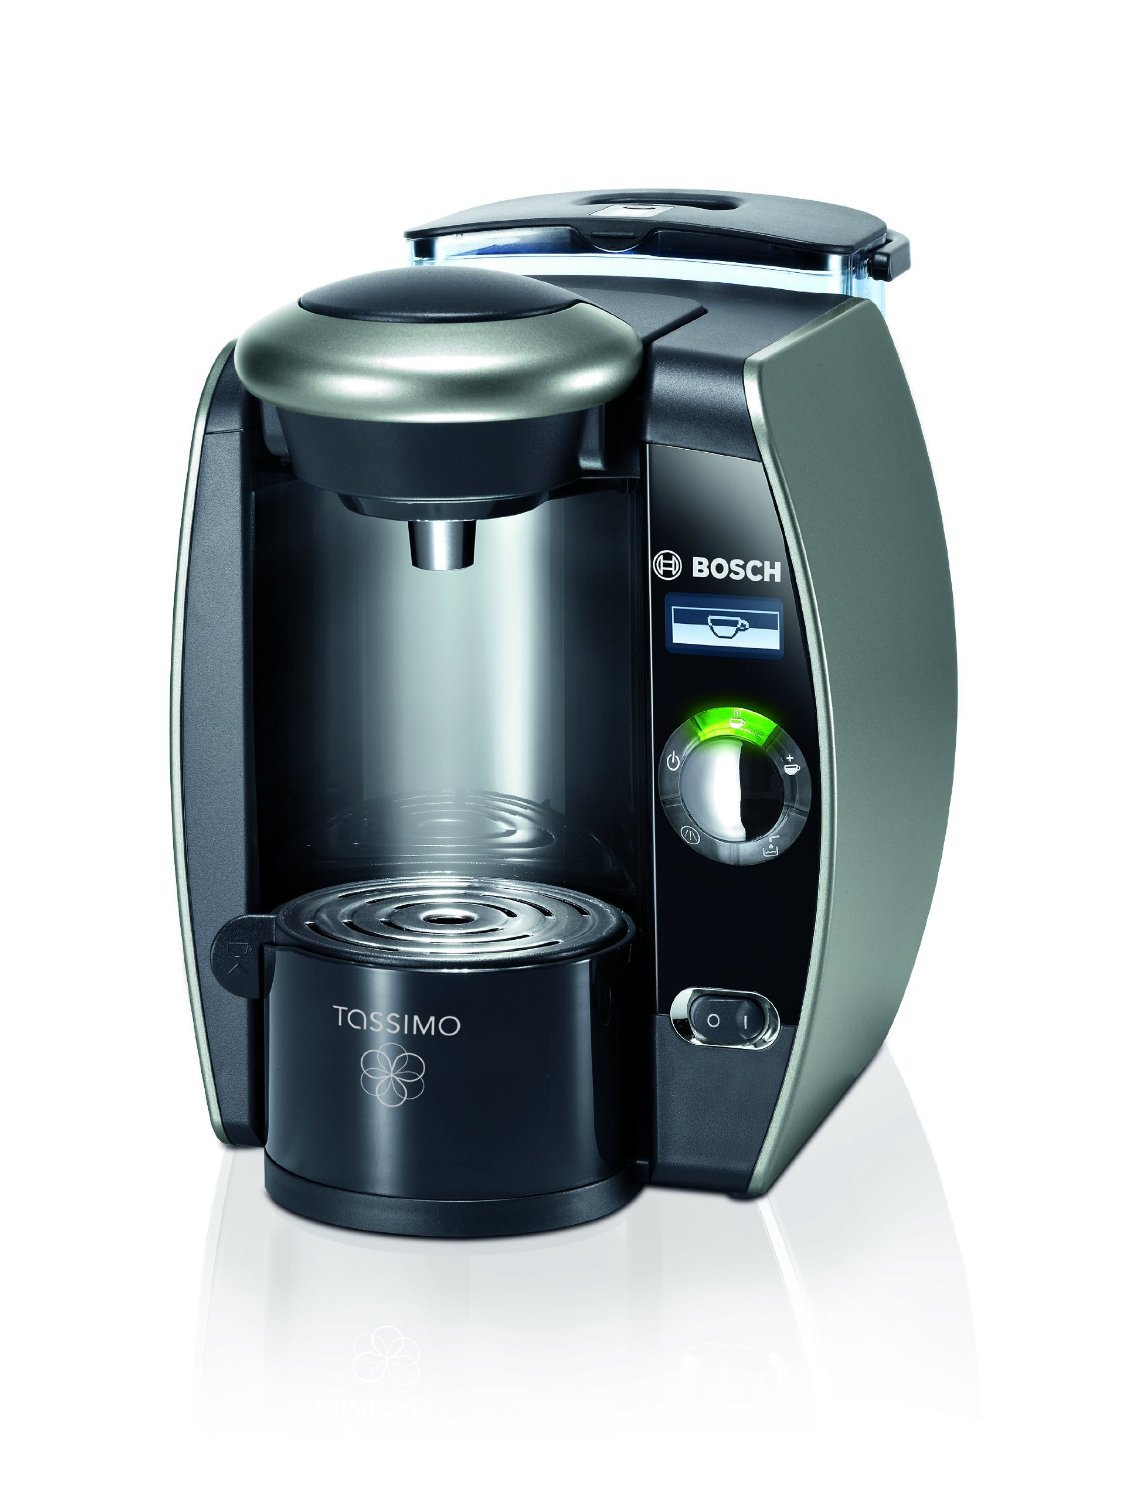 bosch tas6515uc8 tassimo t65 home brewing system reviews in coffee makers machines chickadvisor. Black Bedroom Furniture Sets. Home Design Ideas